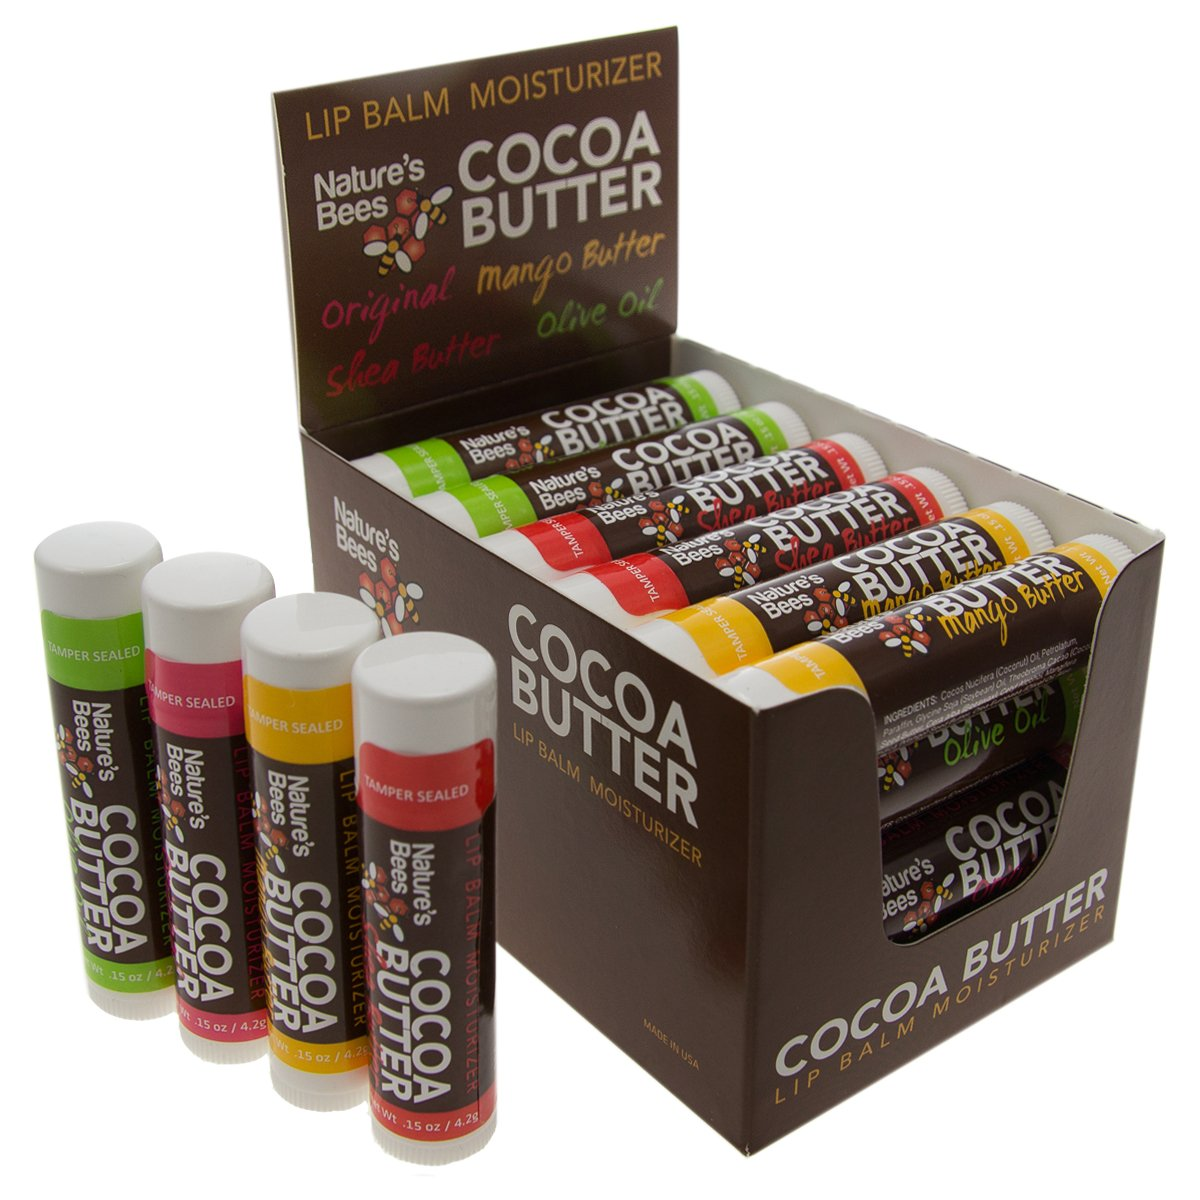 Nature's Bees, Cocoa Butter Lip Balms, Original Mix, Display Box, with Shea Butter - Pack of 24 by Nature's Bees